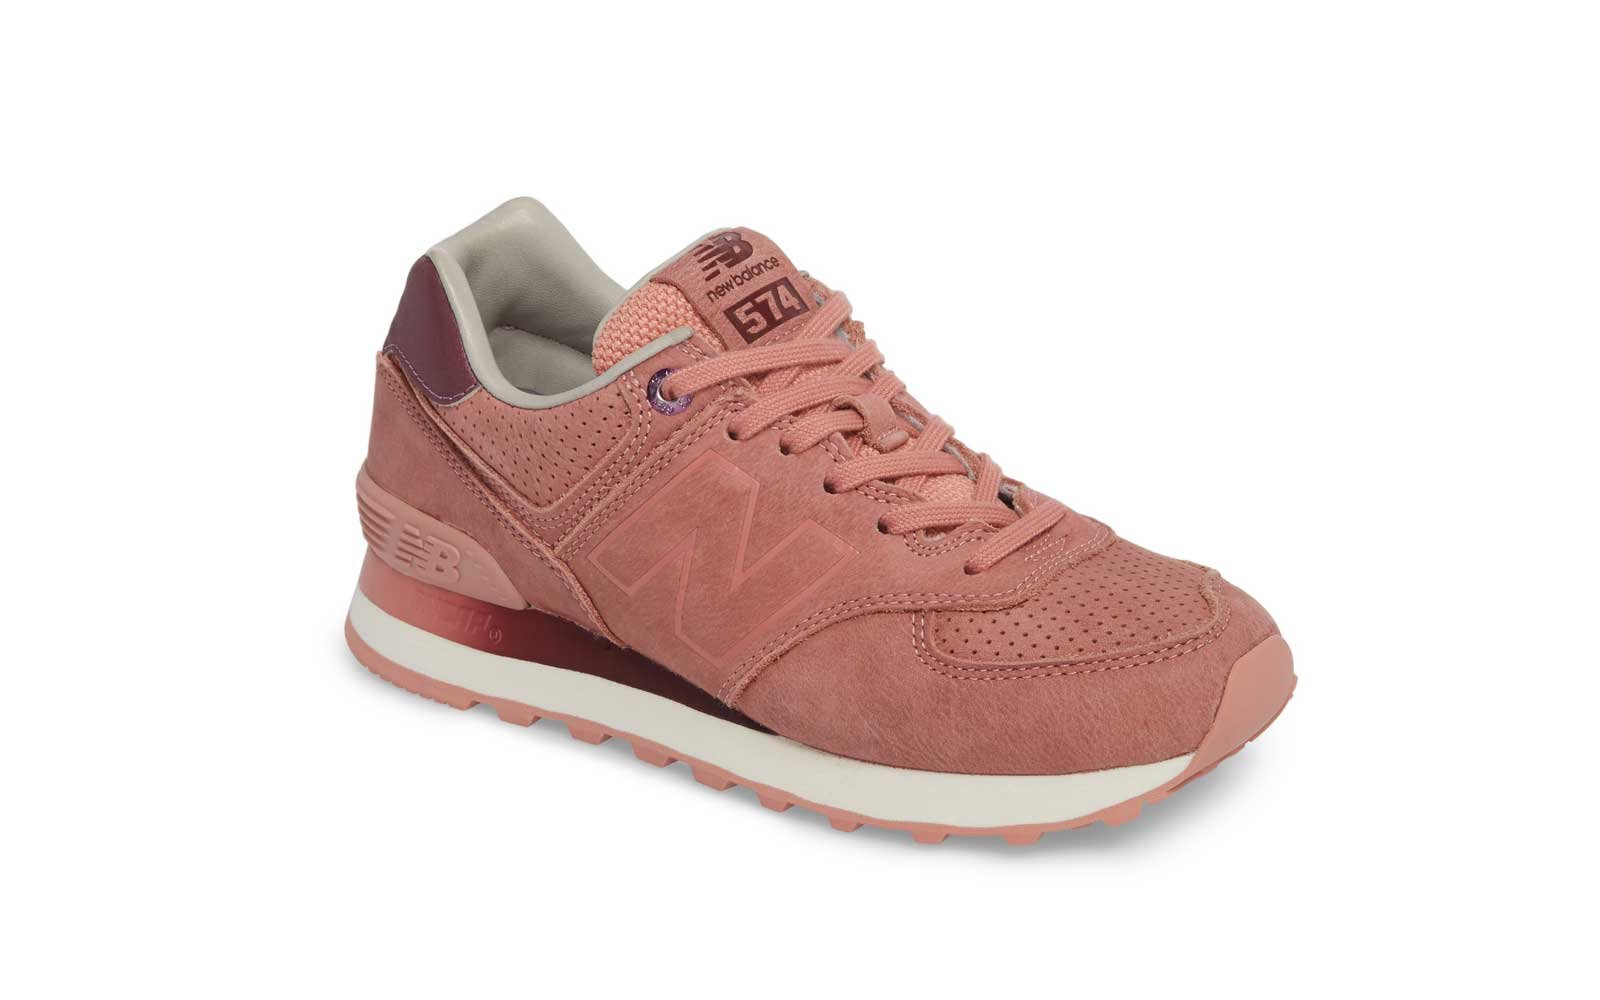 6492f8c65c For a Pop of Color  New Balance 574 Sneakers. The Best Comfy and Cute  Sneakers